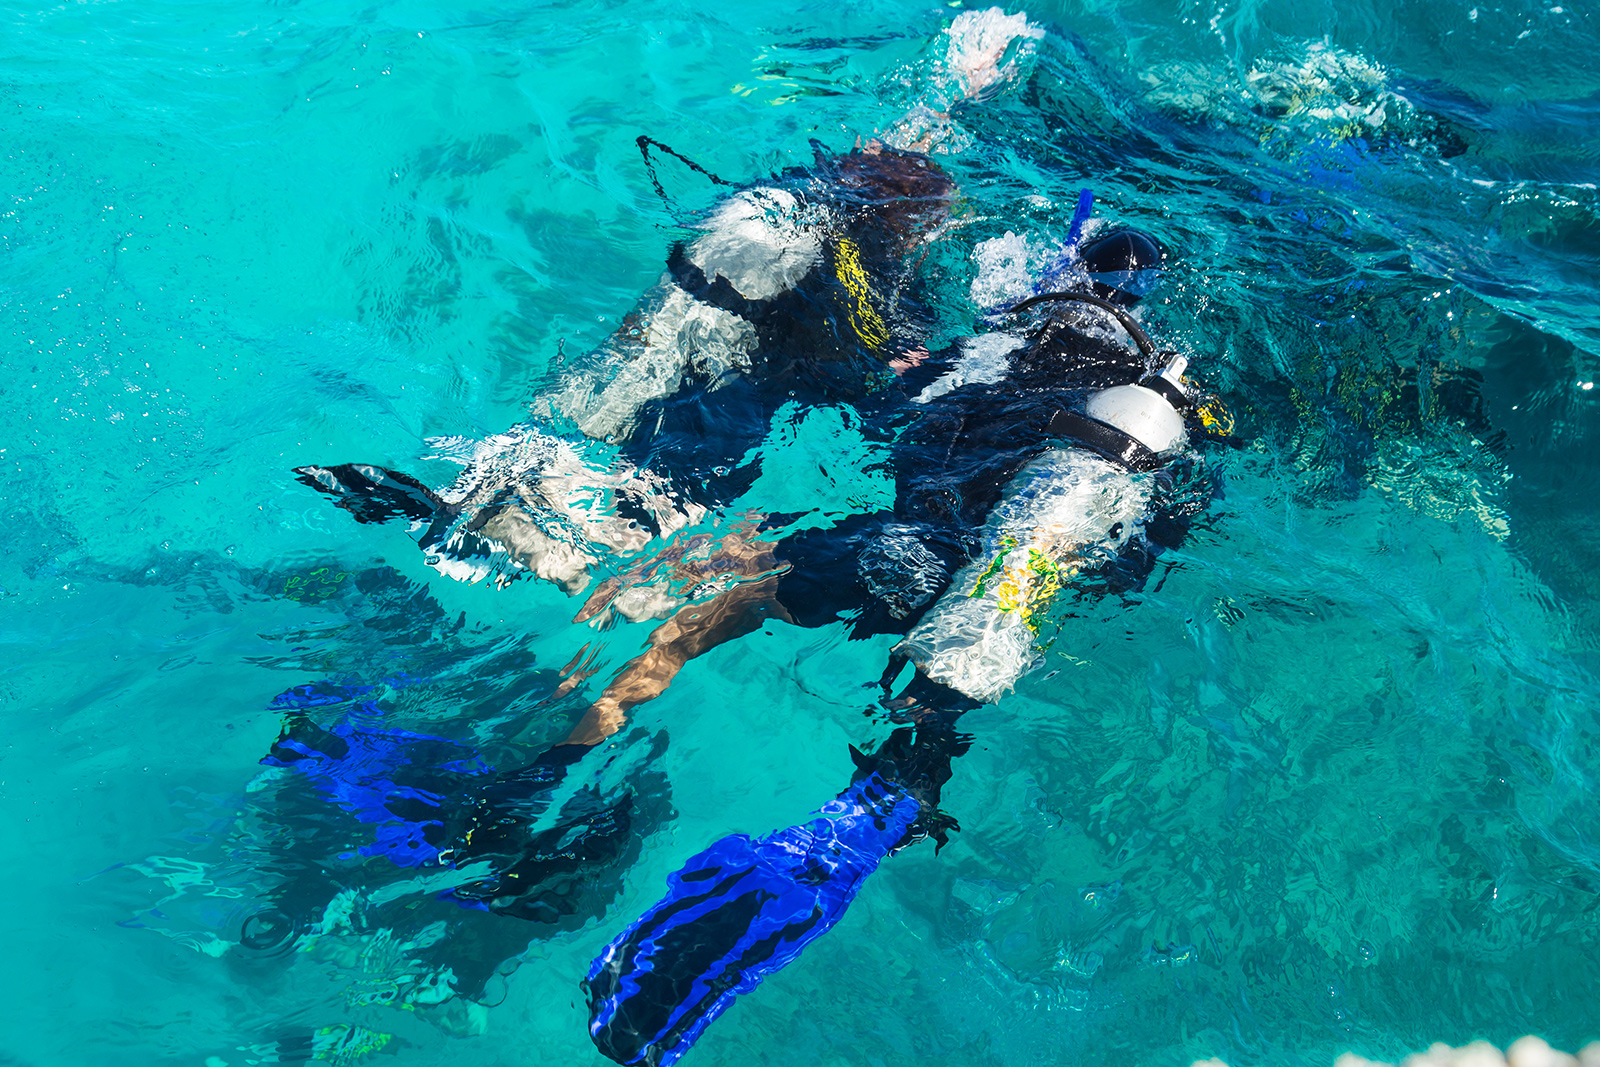 Try These Otherwordly Scuba Diving Sites In The Caribbean